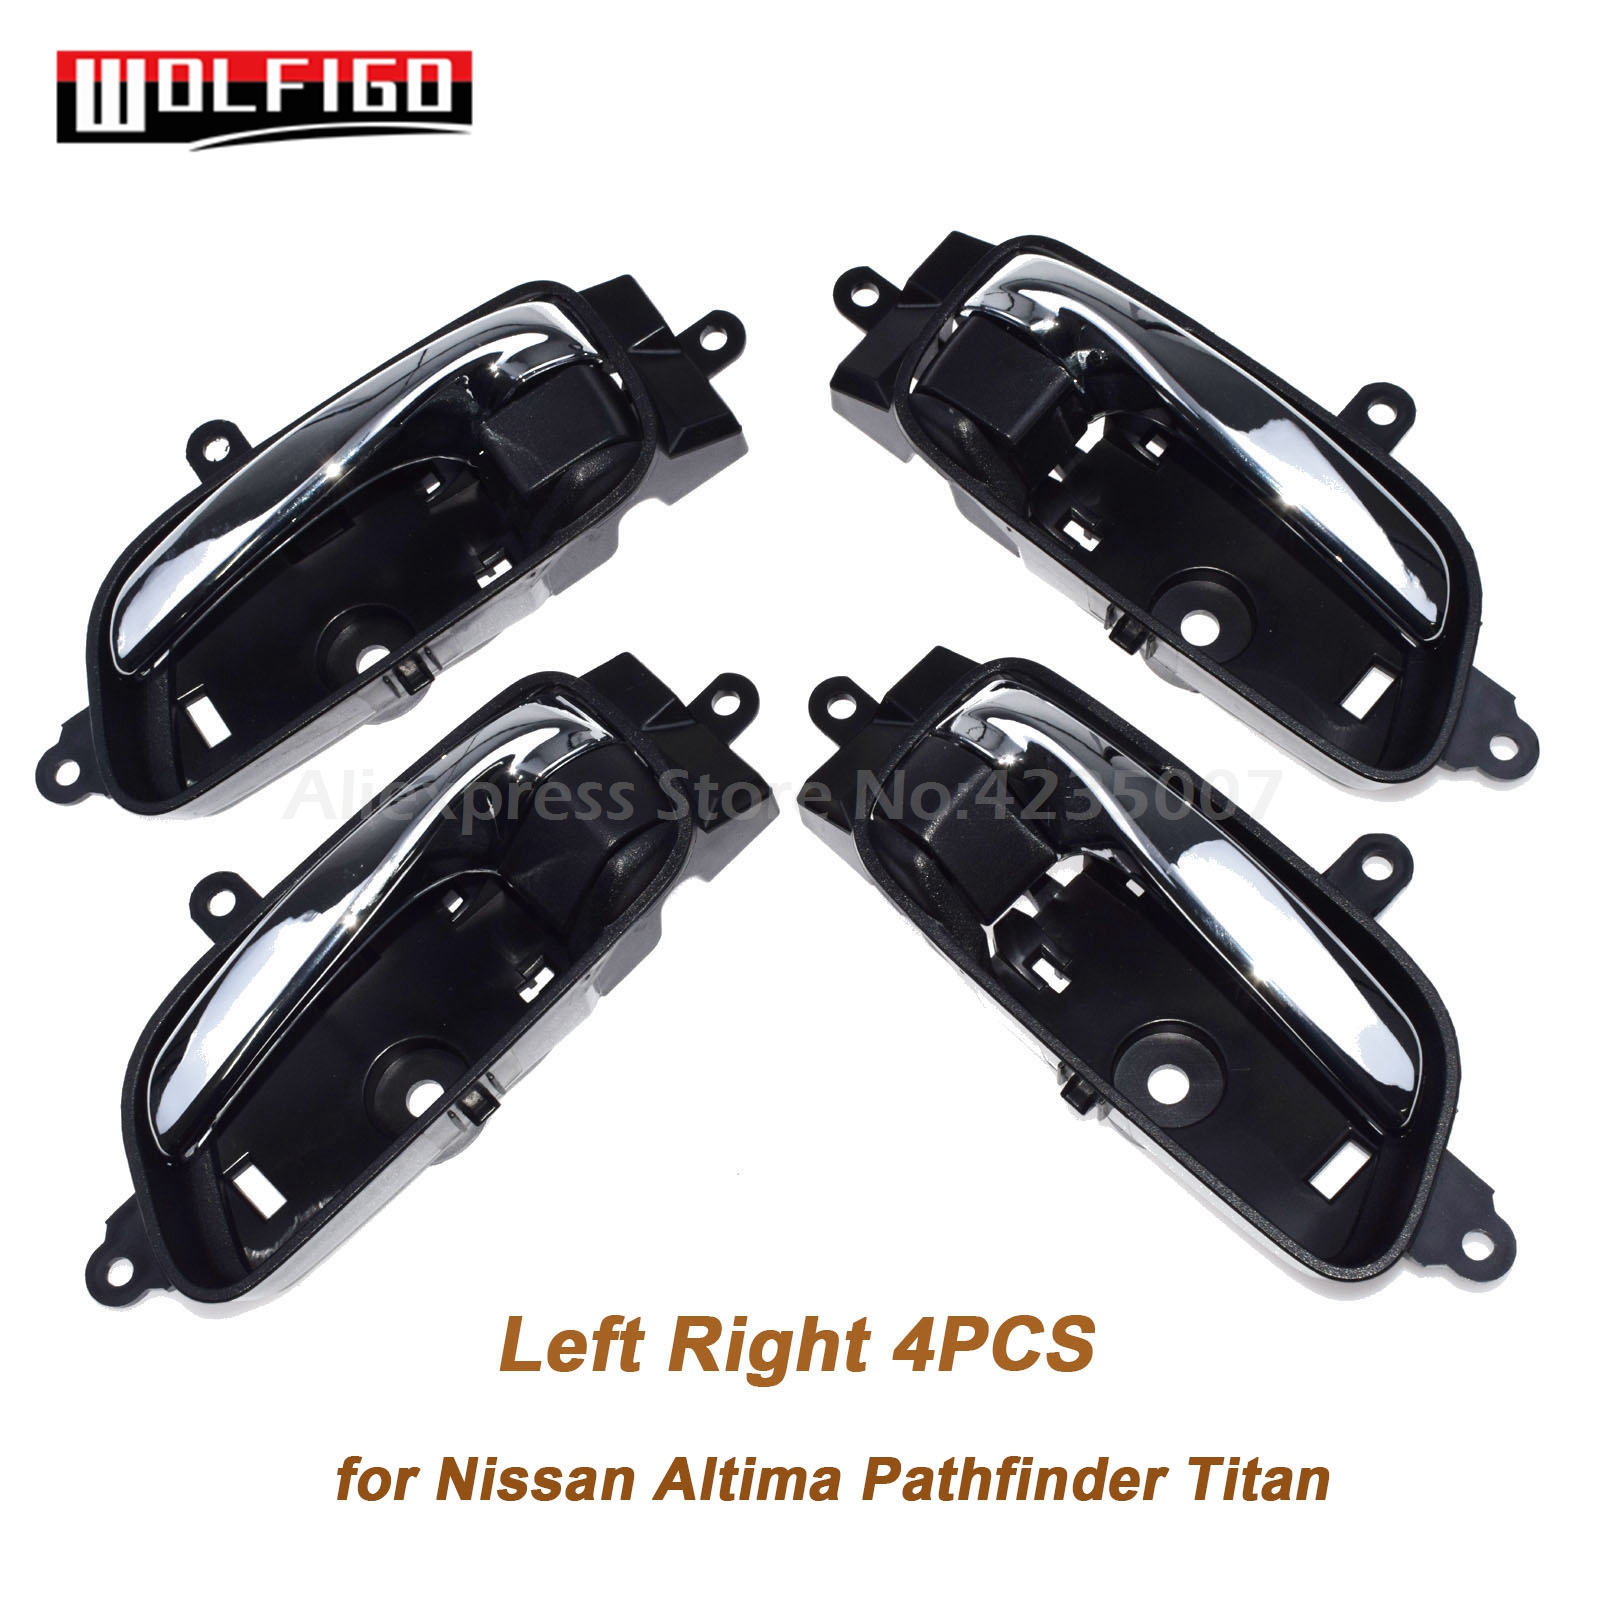 WOLFIGO New Chrome & Black Left Right Inside Door Handles for Nissan Altima Pathfinder Titan 80671-3TA0D, 80670-3TA0D(China)